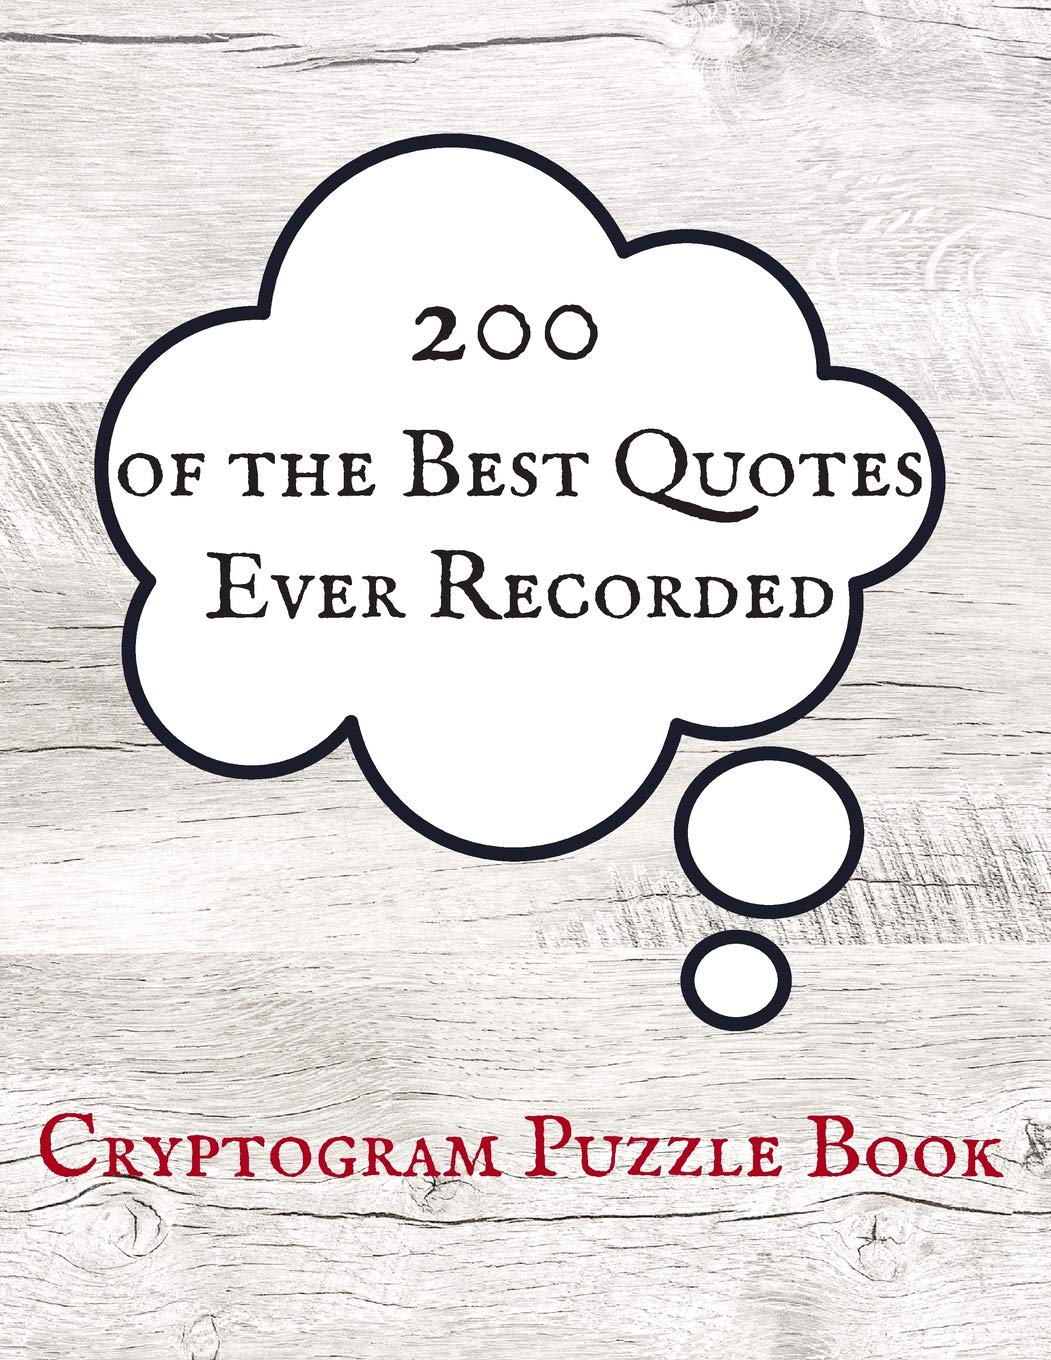 200 Of The Best Quotes Ever Recorded Cryptogram Puzzle Book Word Puzzles For Brain Teasing Games Inc Timot 9781076254276 Amazon Com Books